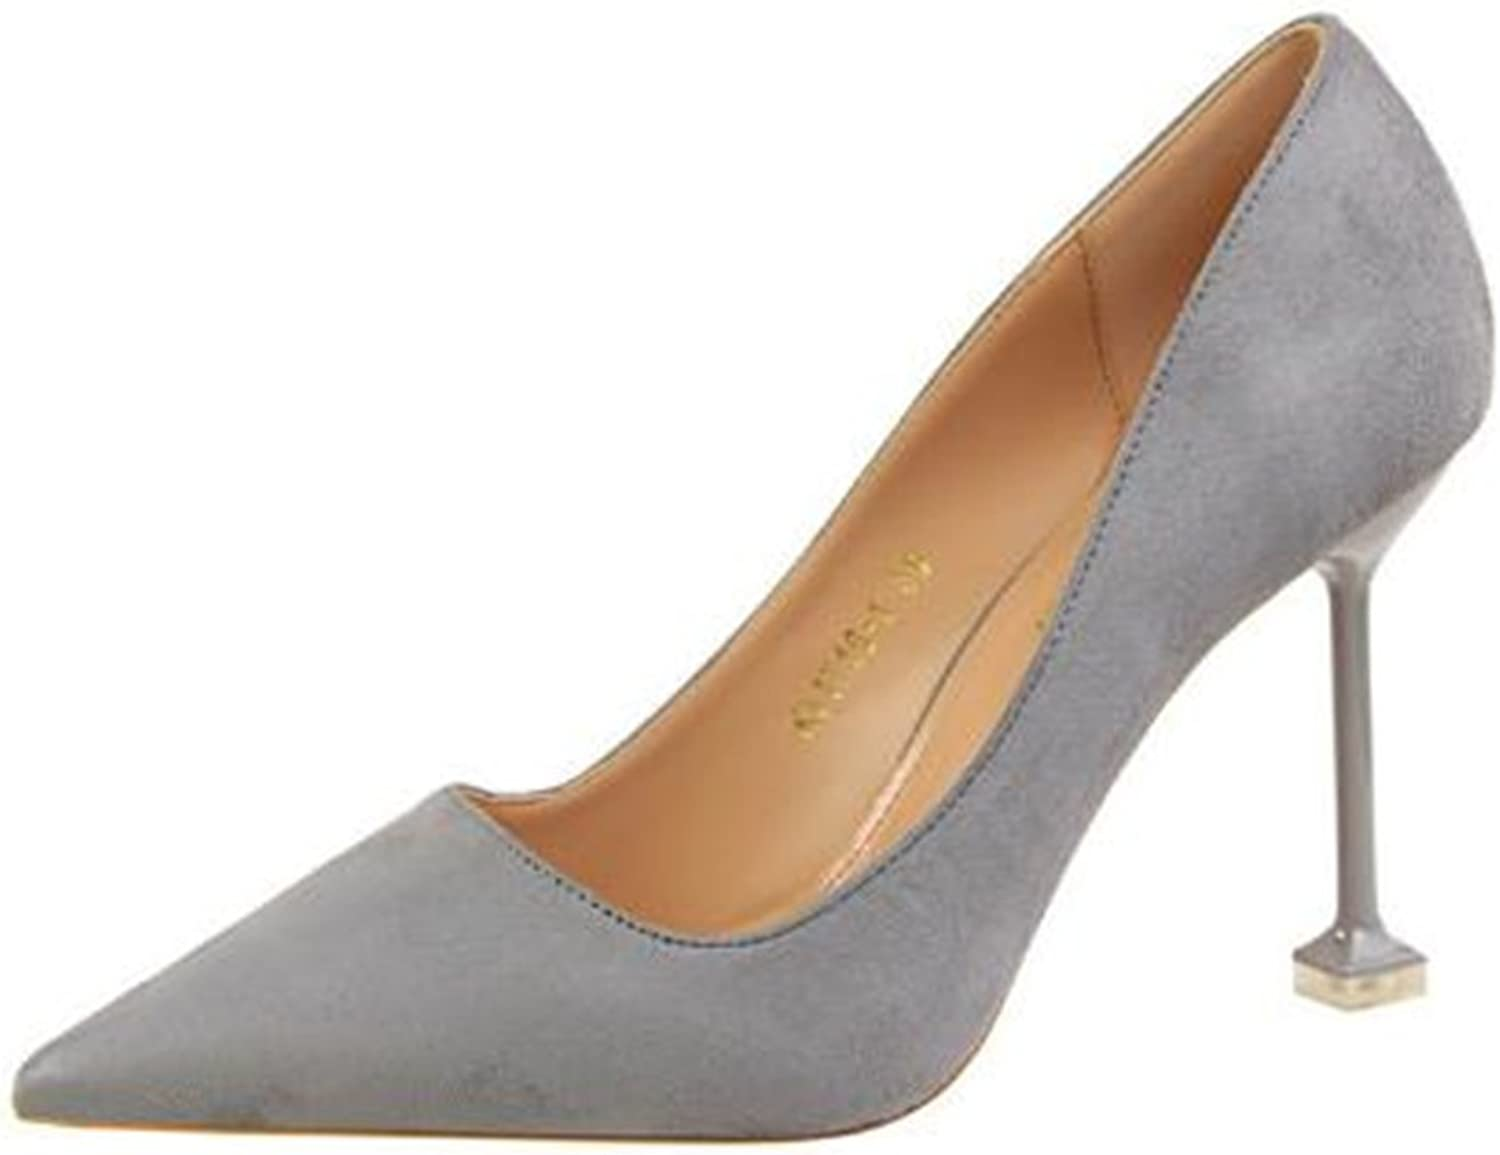 Quality.A Professional Women's shoes Elegant Stiletto Pointed Toe high Heels